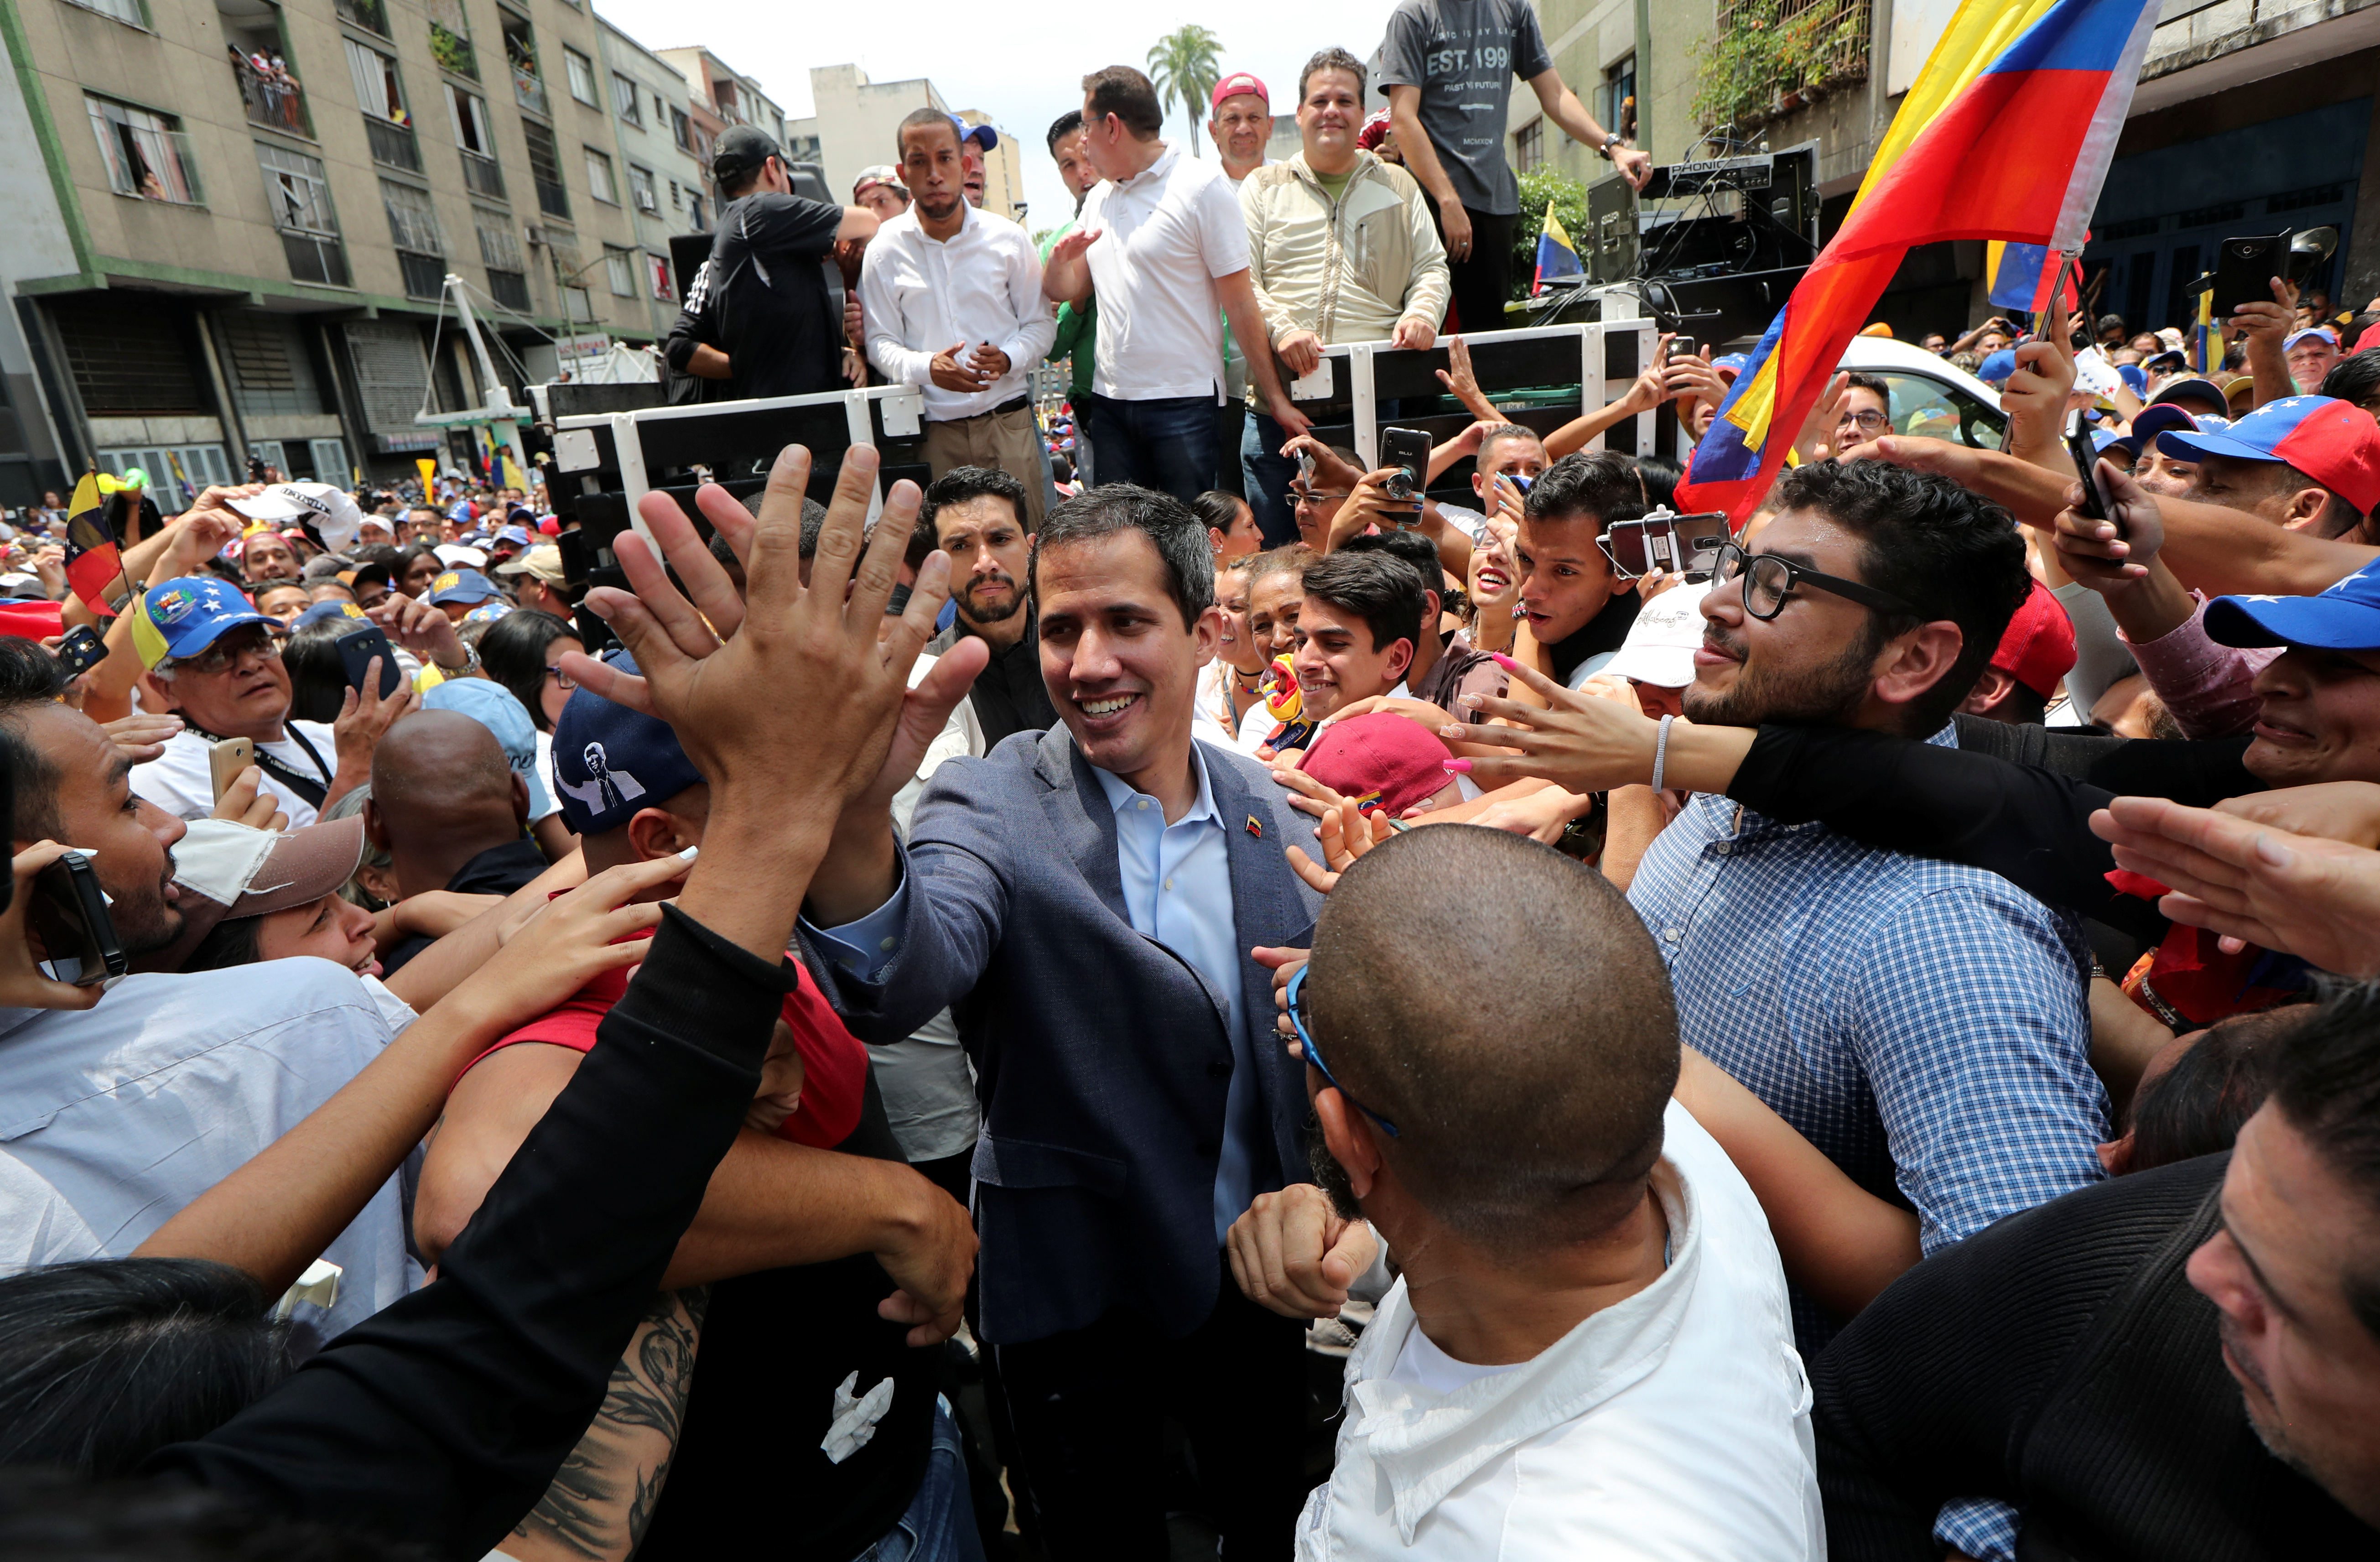 Venezuelan opposition leader Juan Guaido, whom many nations have recognized as the country's rightful interim ruler, greets supporters during a rallyin Los Teques, Venezuela, March 30, 2019.